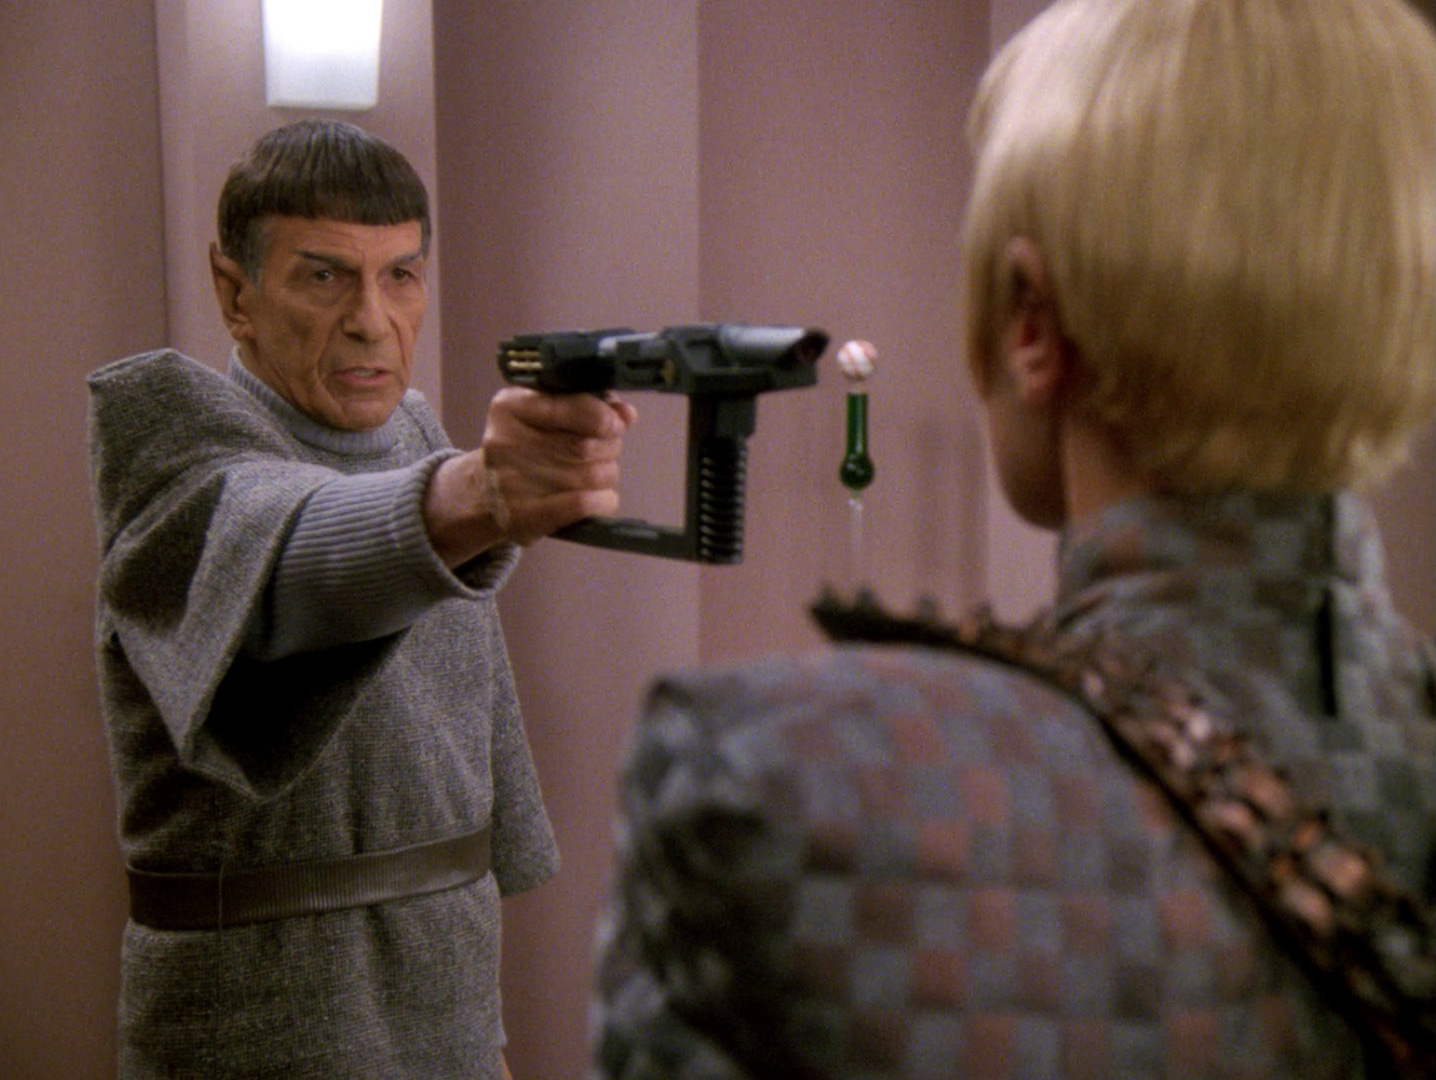 Star Trek: The Next Generation - Wiedervereinigung (Unification) Blu-ray Screencap © CBS/Paramount